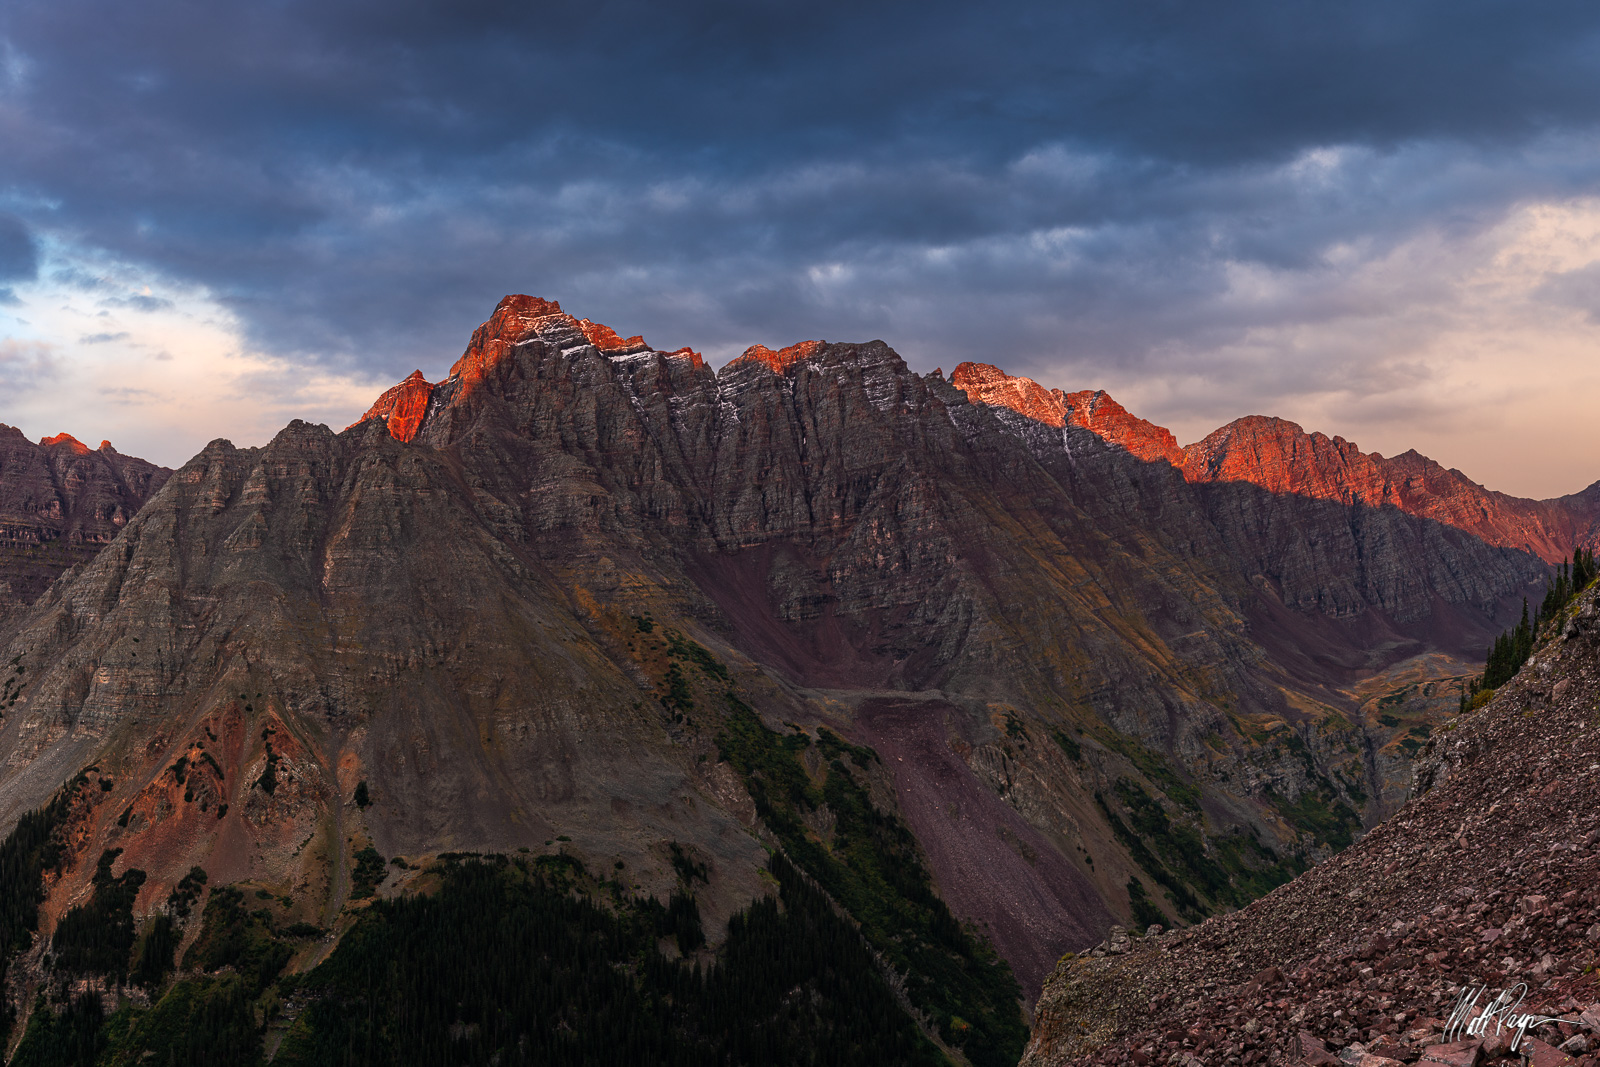 13ers, 14er, Alpenglow, Aspen, Centennial, Climbing, Colorado, Mountains, Fall, Landscape, Mountains, Pyramid Peak, Thunder Pyramid, sunset, snow, Maroon Bells, wilderness, photo